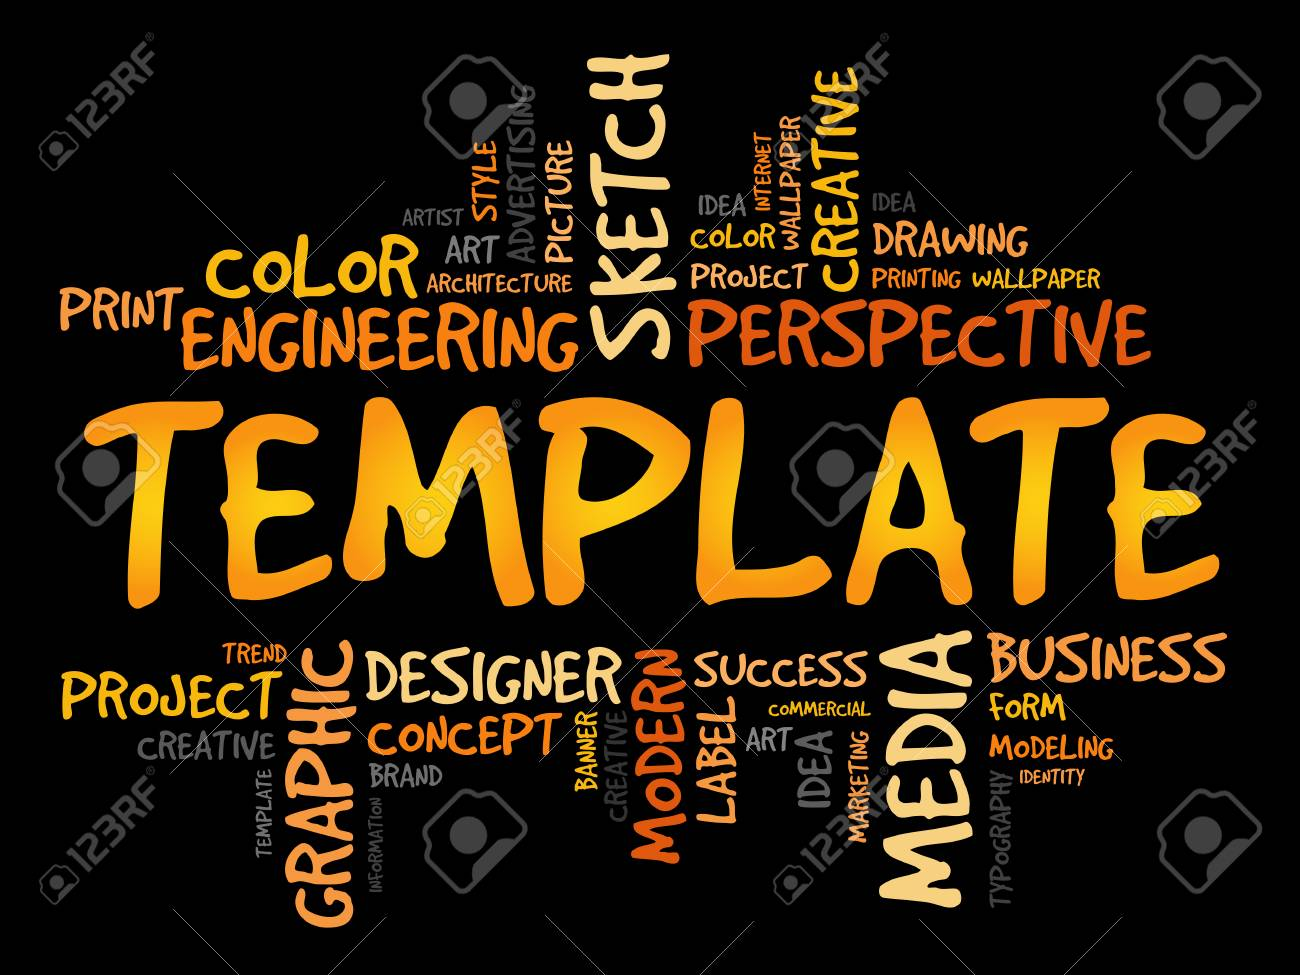 TEMPLATE Word Cloud, Business Concept Royalty Free Cliparts, Vectors ...